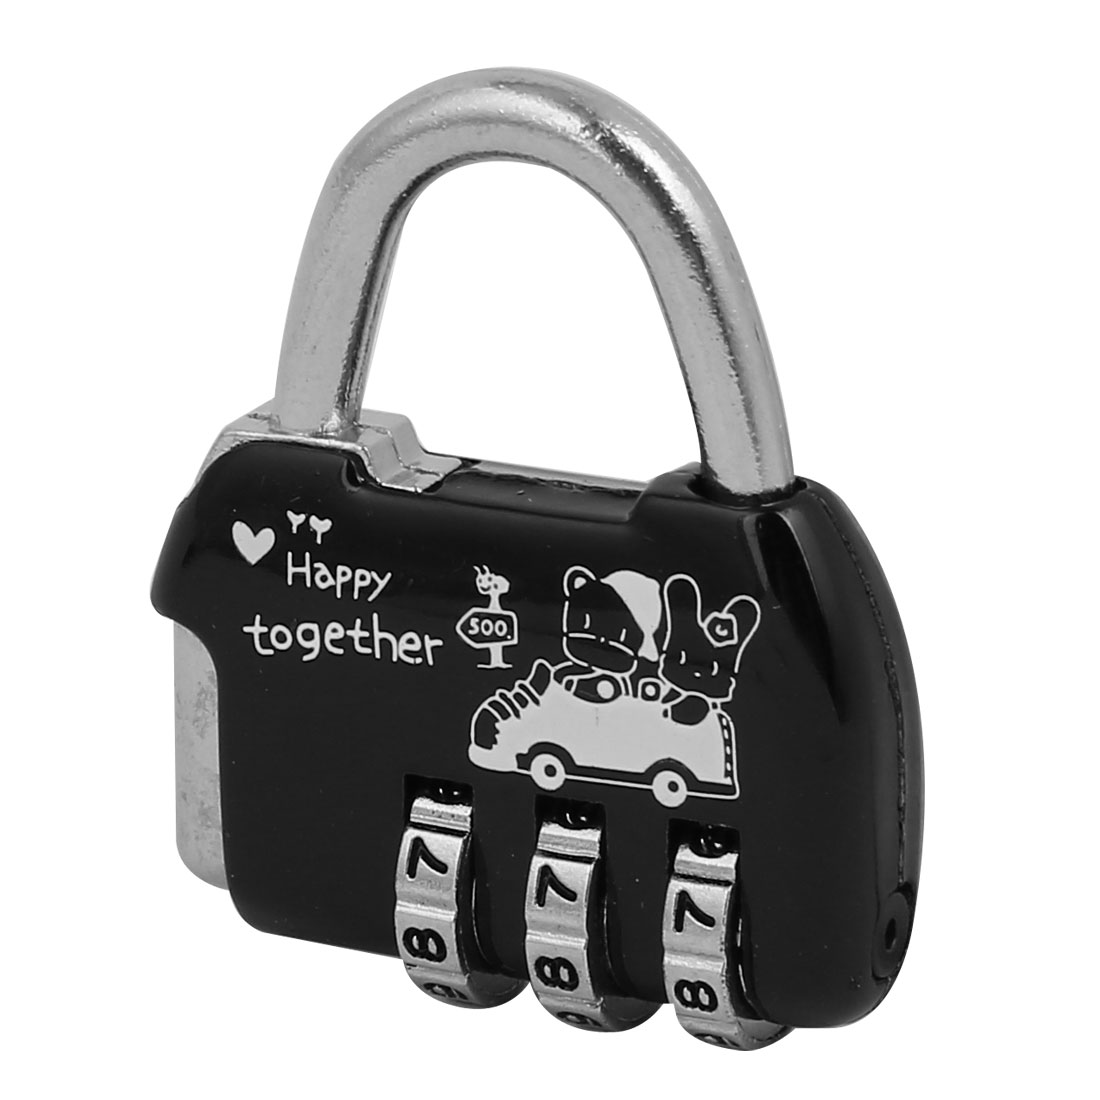 Black Silver Tone Metal Handbag Shaped 3 Digits Combination Password Padlock